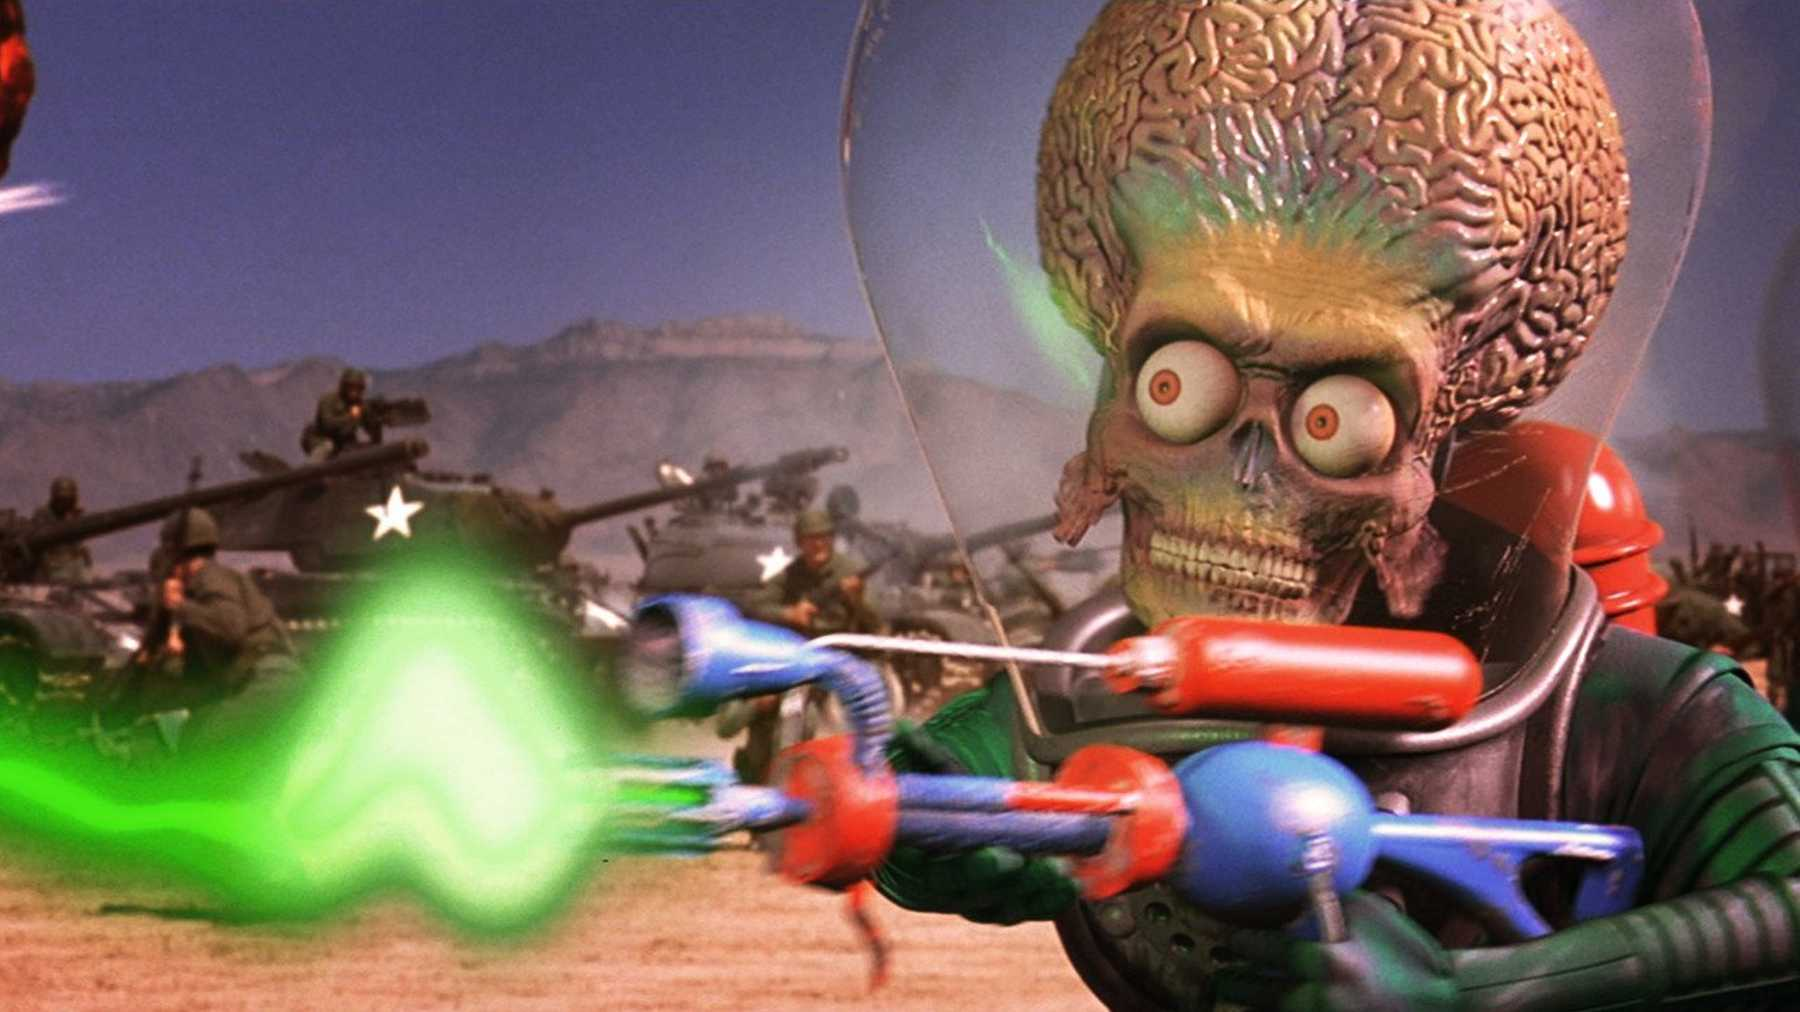 'Mars Attacks!' is one of the biggest wastes of talent I've ever seen.